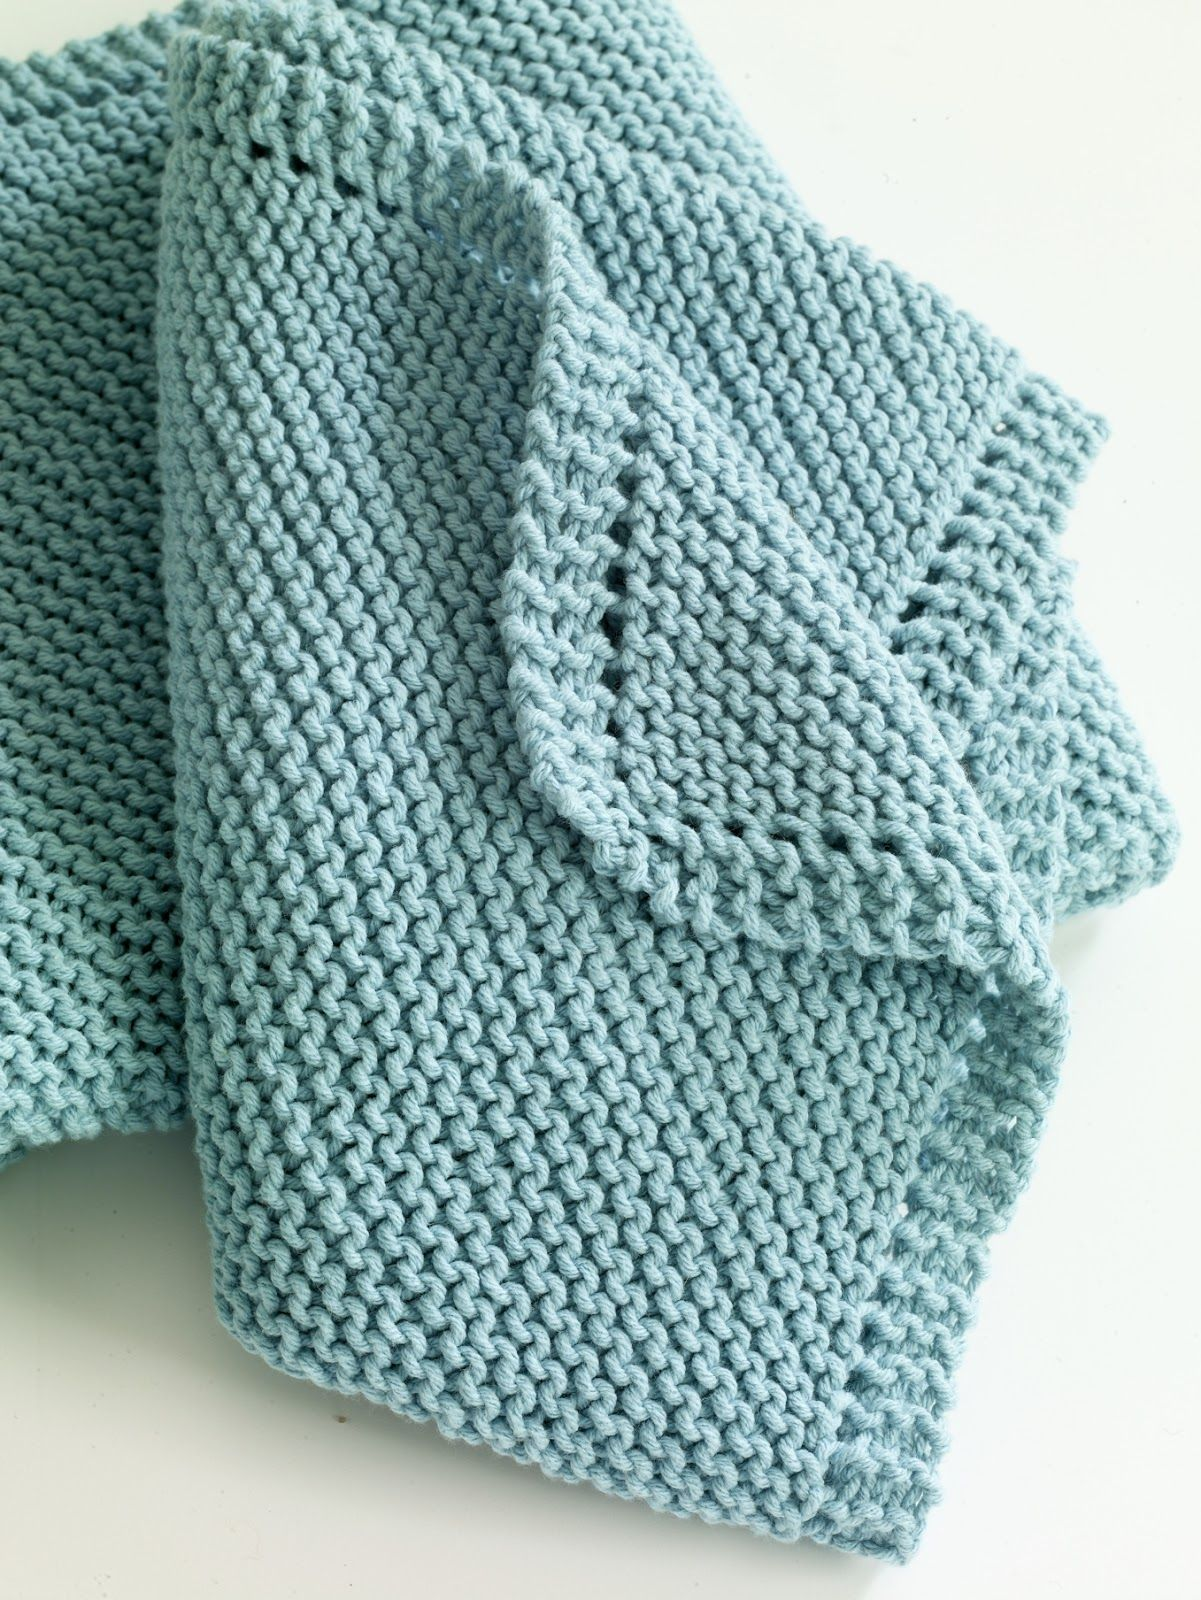 Free easy knit baby blanket patterns quick knits for babies free easy knit baby blanket patterns quick knits for babies bankloansurffo Images